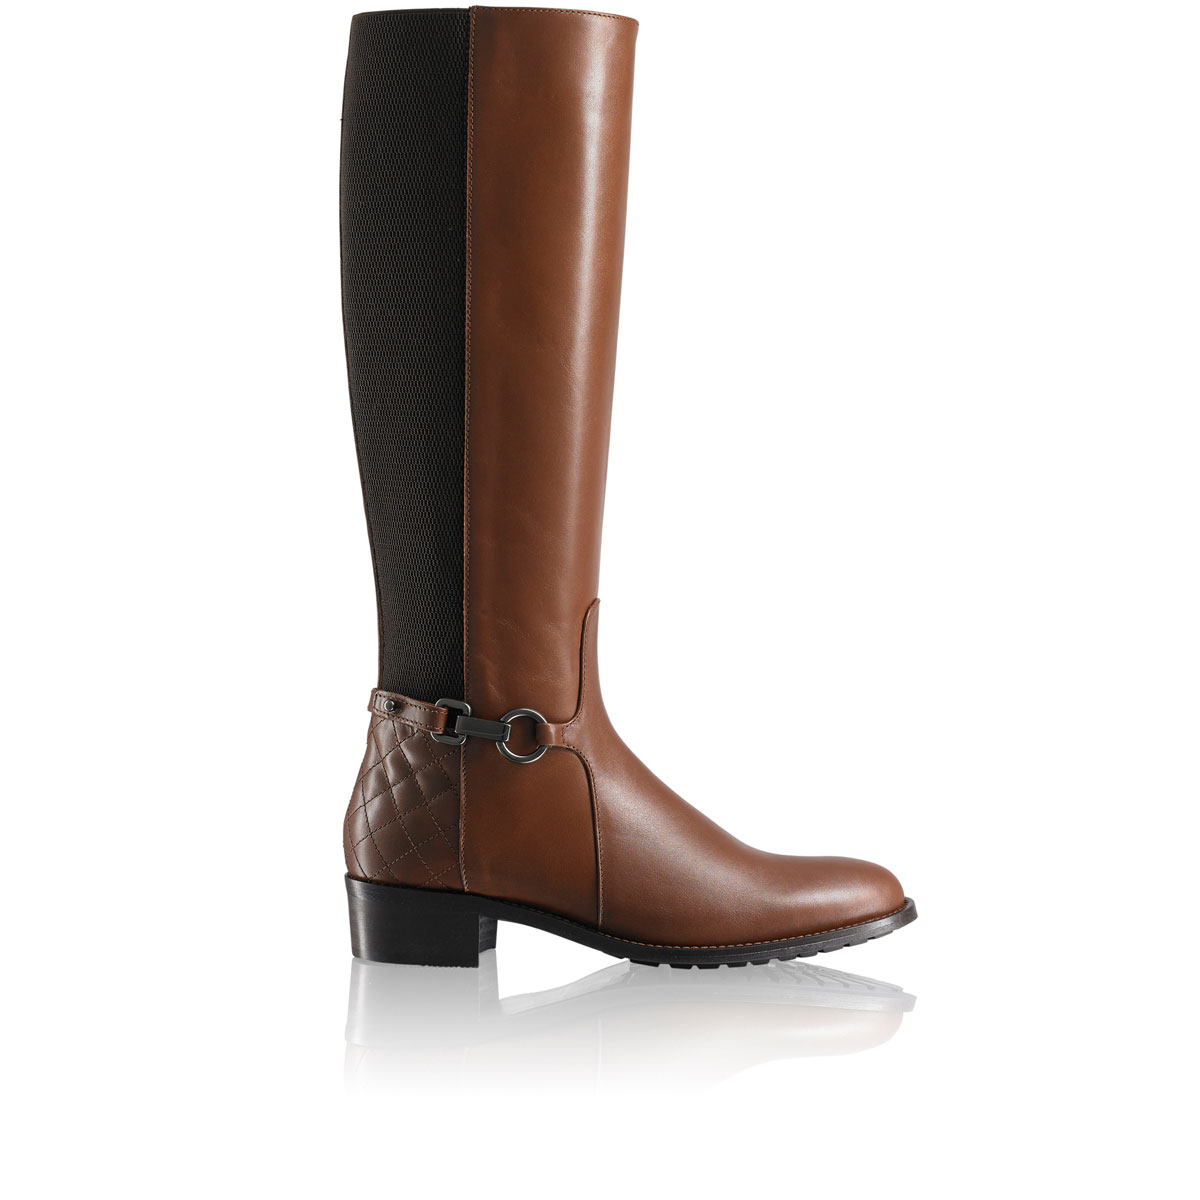 Russell And Bromley ORACLE-DRY Quilt Heel Riding Boot